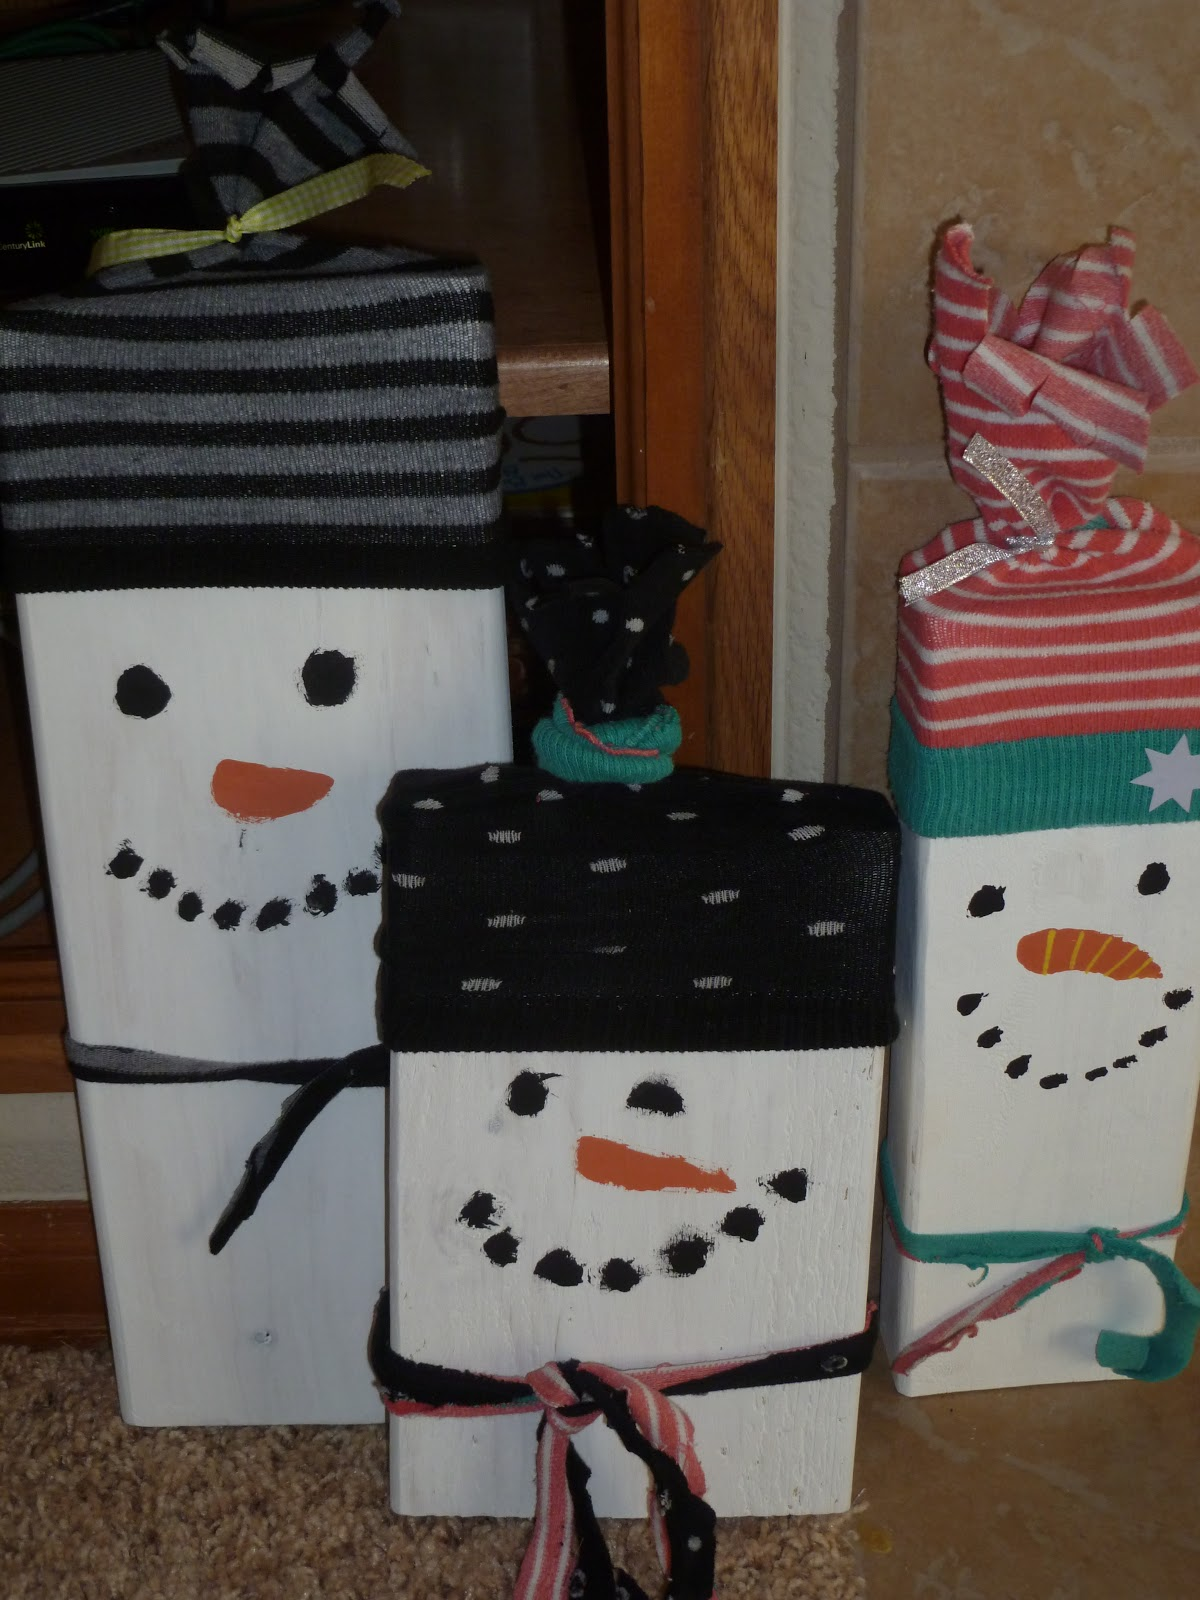 i saw this adorable snowman craft on gco and fell in love gina said her girls ages 6 and 11 made it with some leftover scrap material she had lying